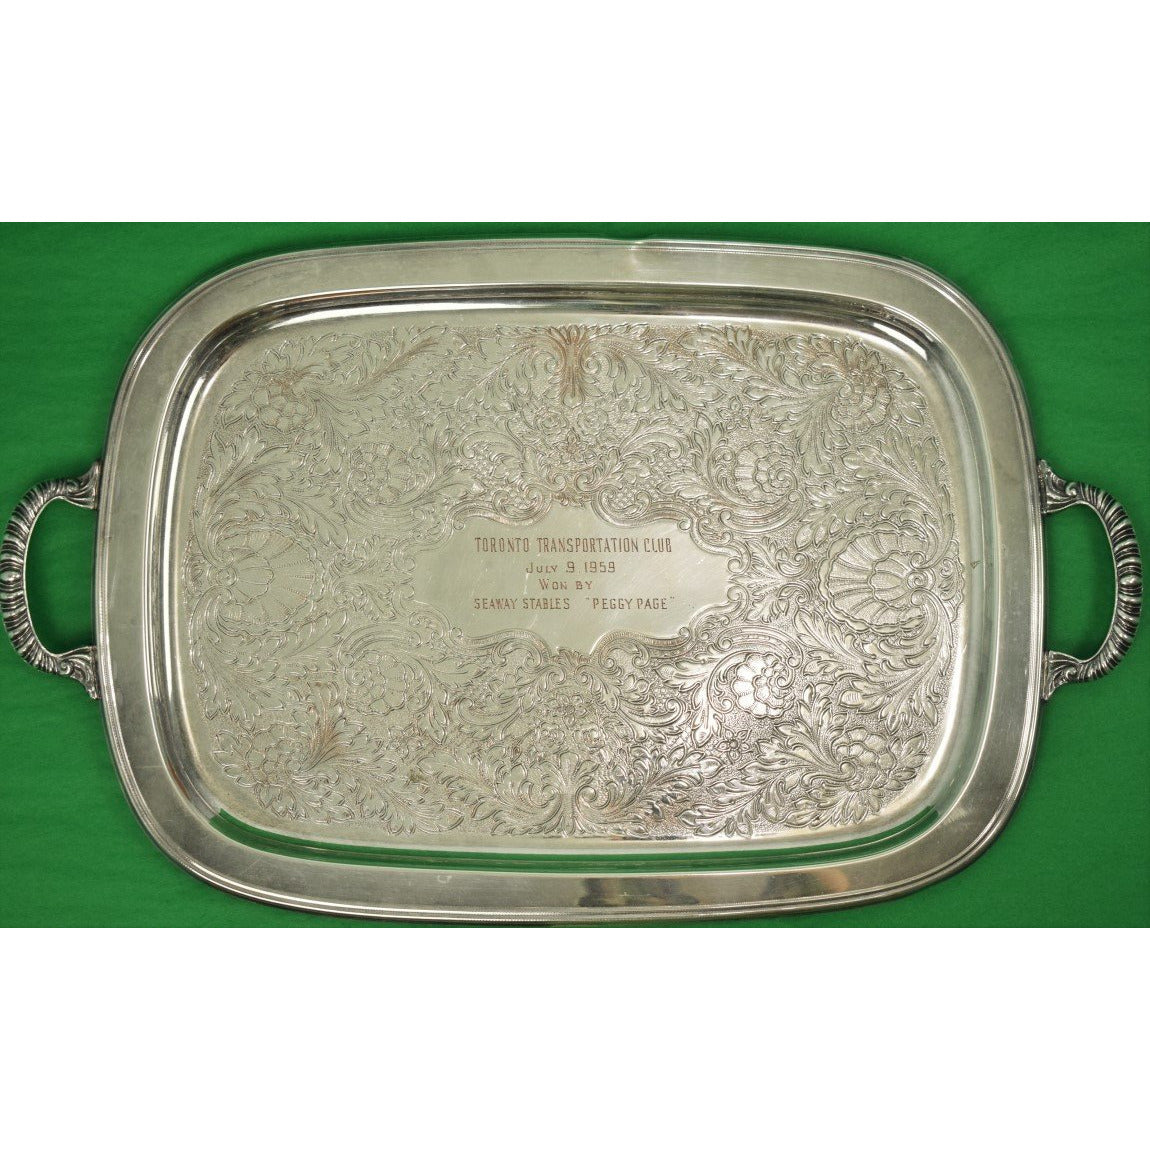 Toronto Transportation Club 1959 Woodbine Racecourse Silverplate Presentation Tray